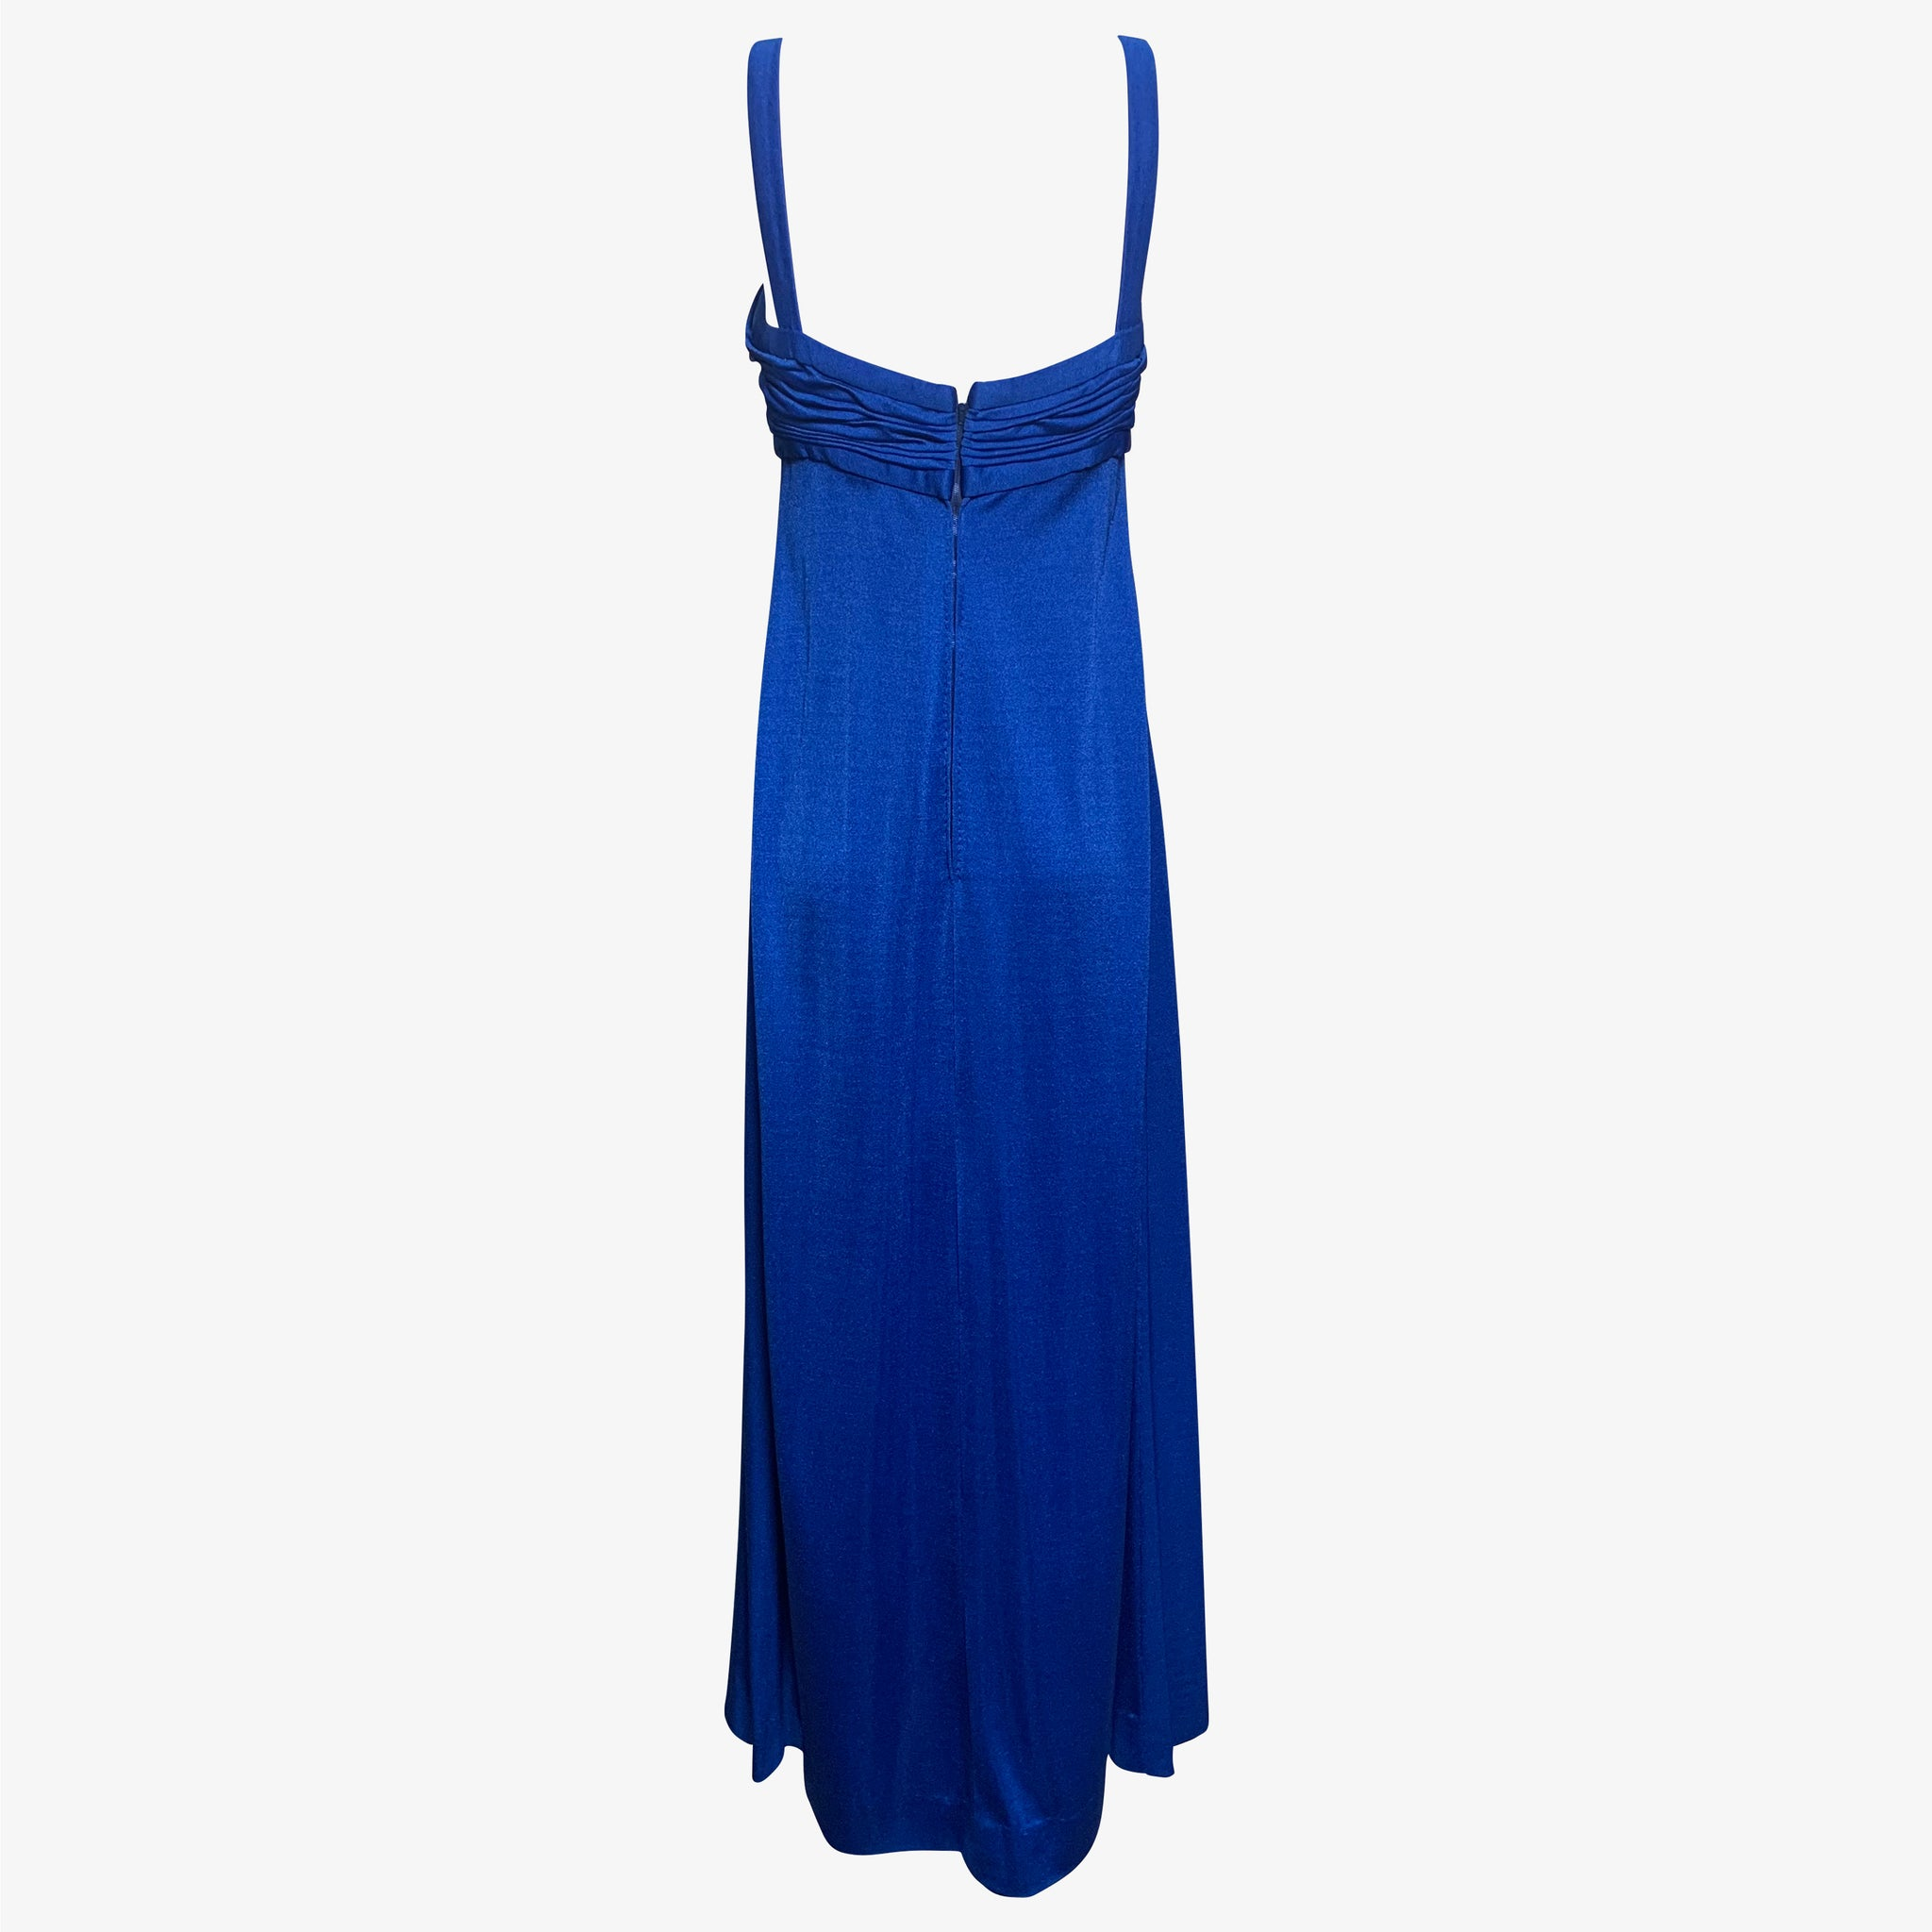 Loris Azzaro Gown Electric Blue jersey  BACK 2 of 4